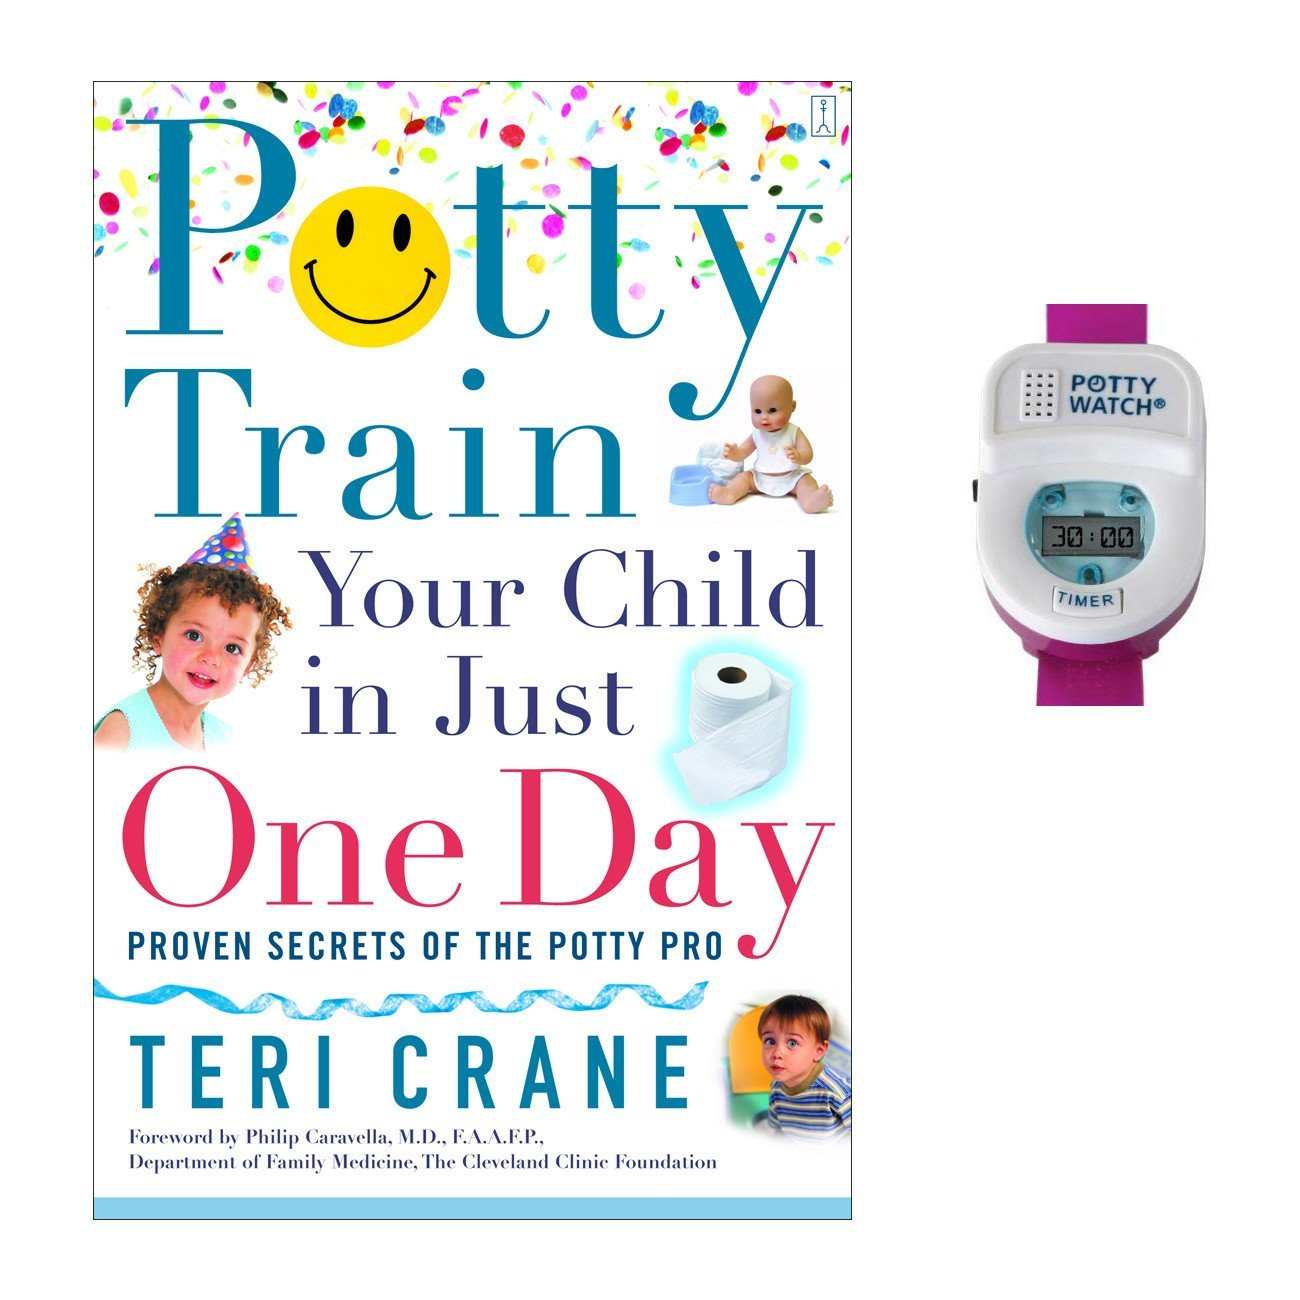 Potty Train Your Child in Just One Day with Potty Watch Training Aid, Pink